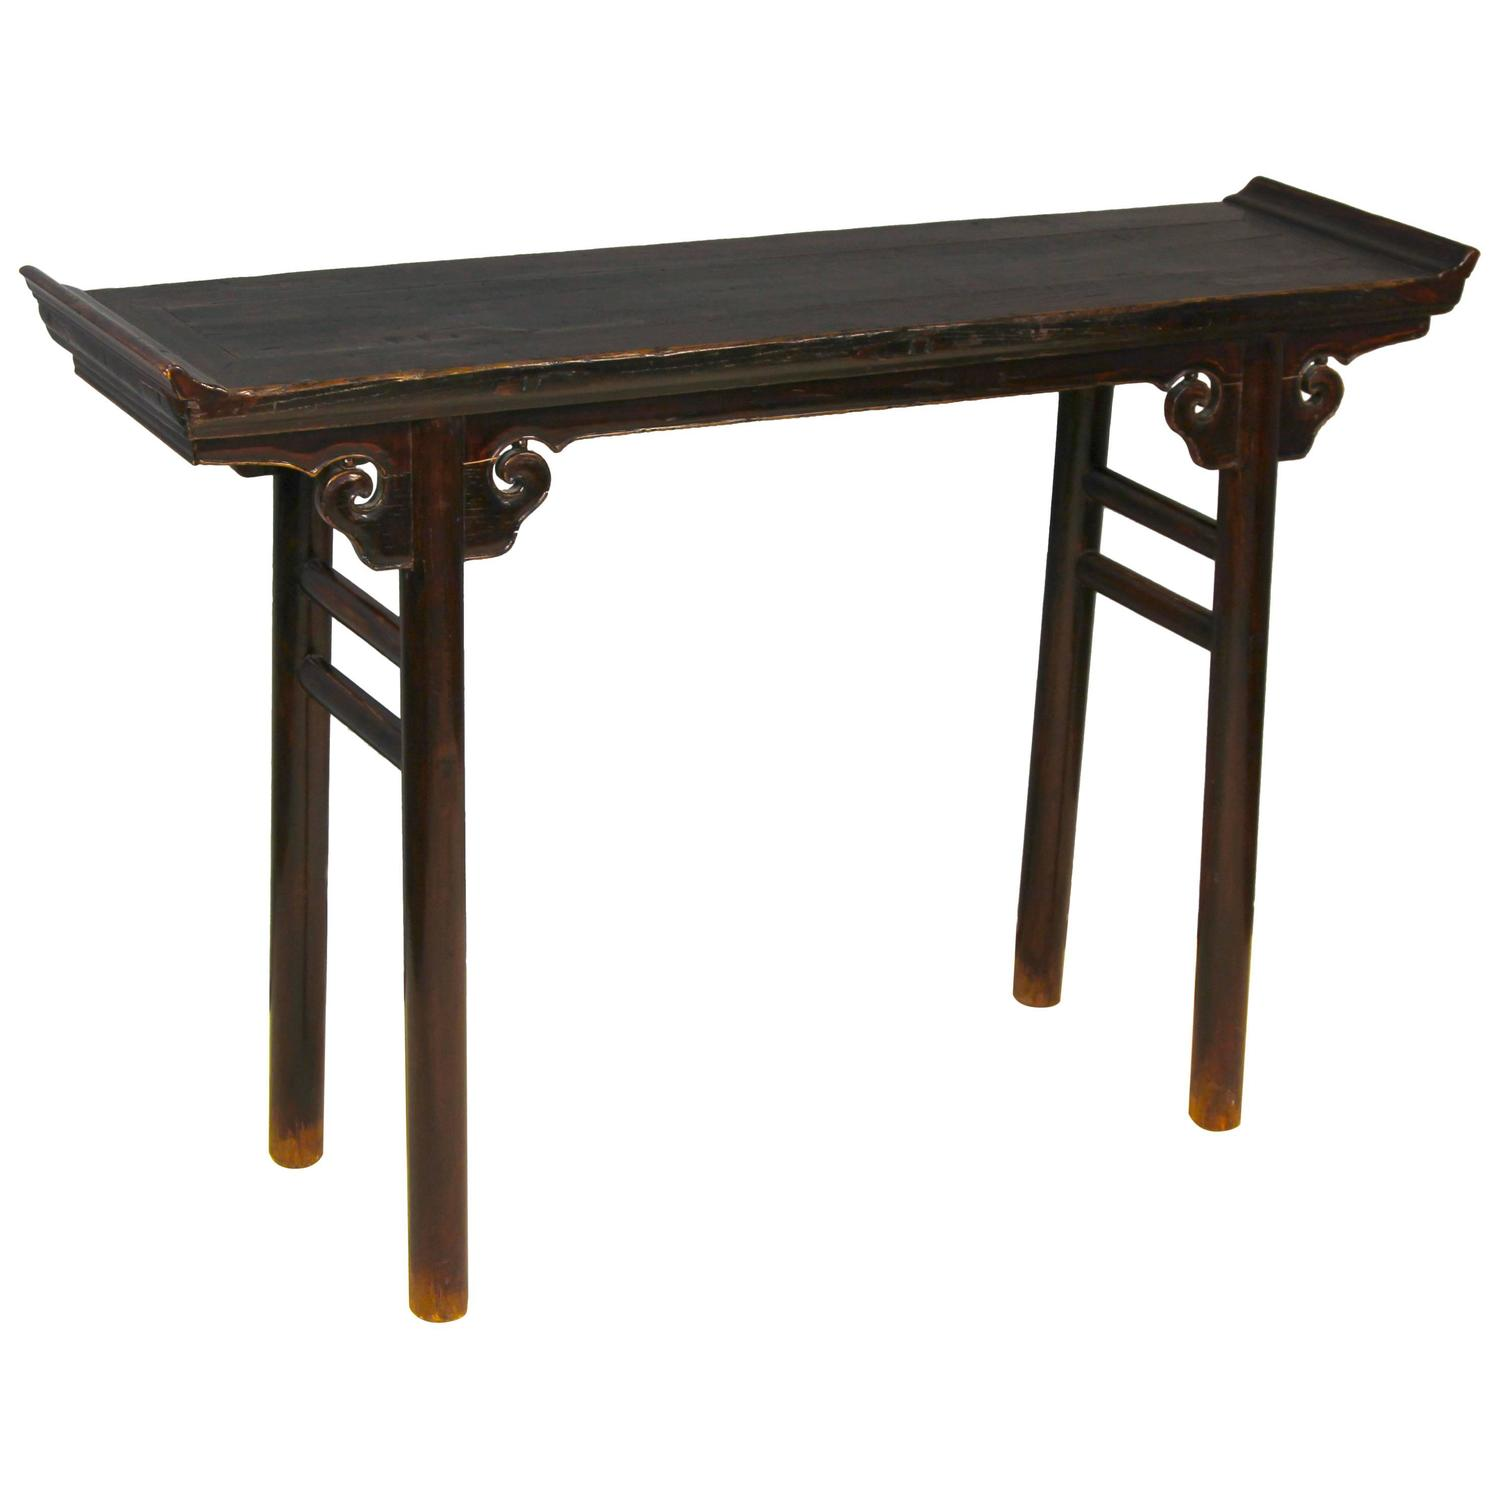 19th century elmwood console or altar table for sale at for Chinese furniture norwalk ct